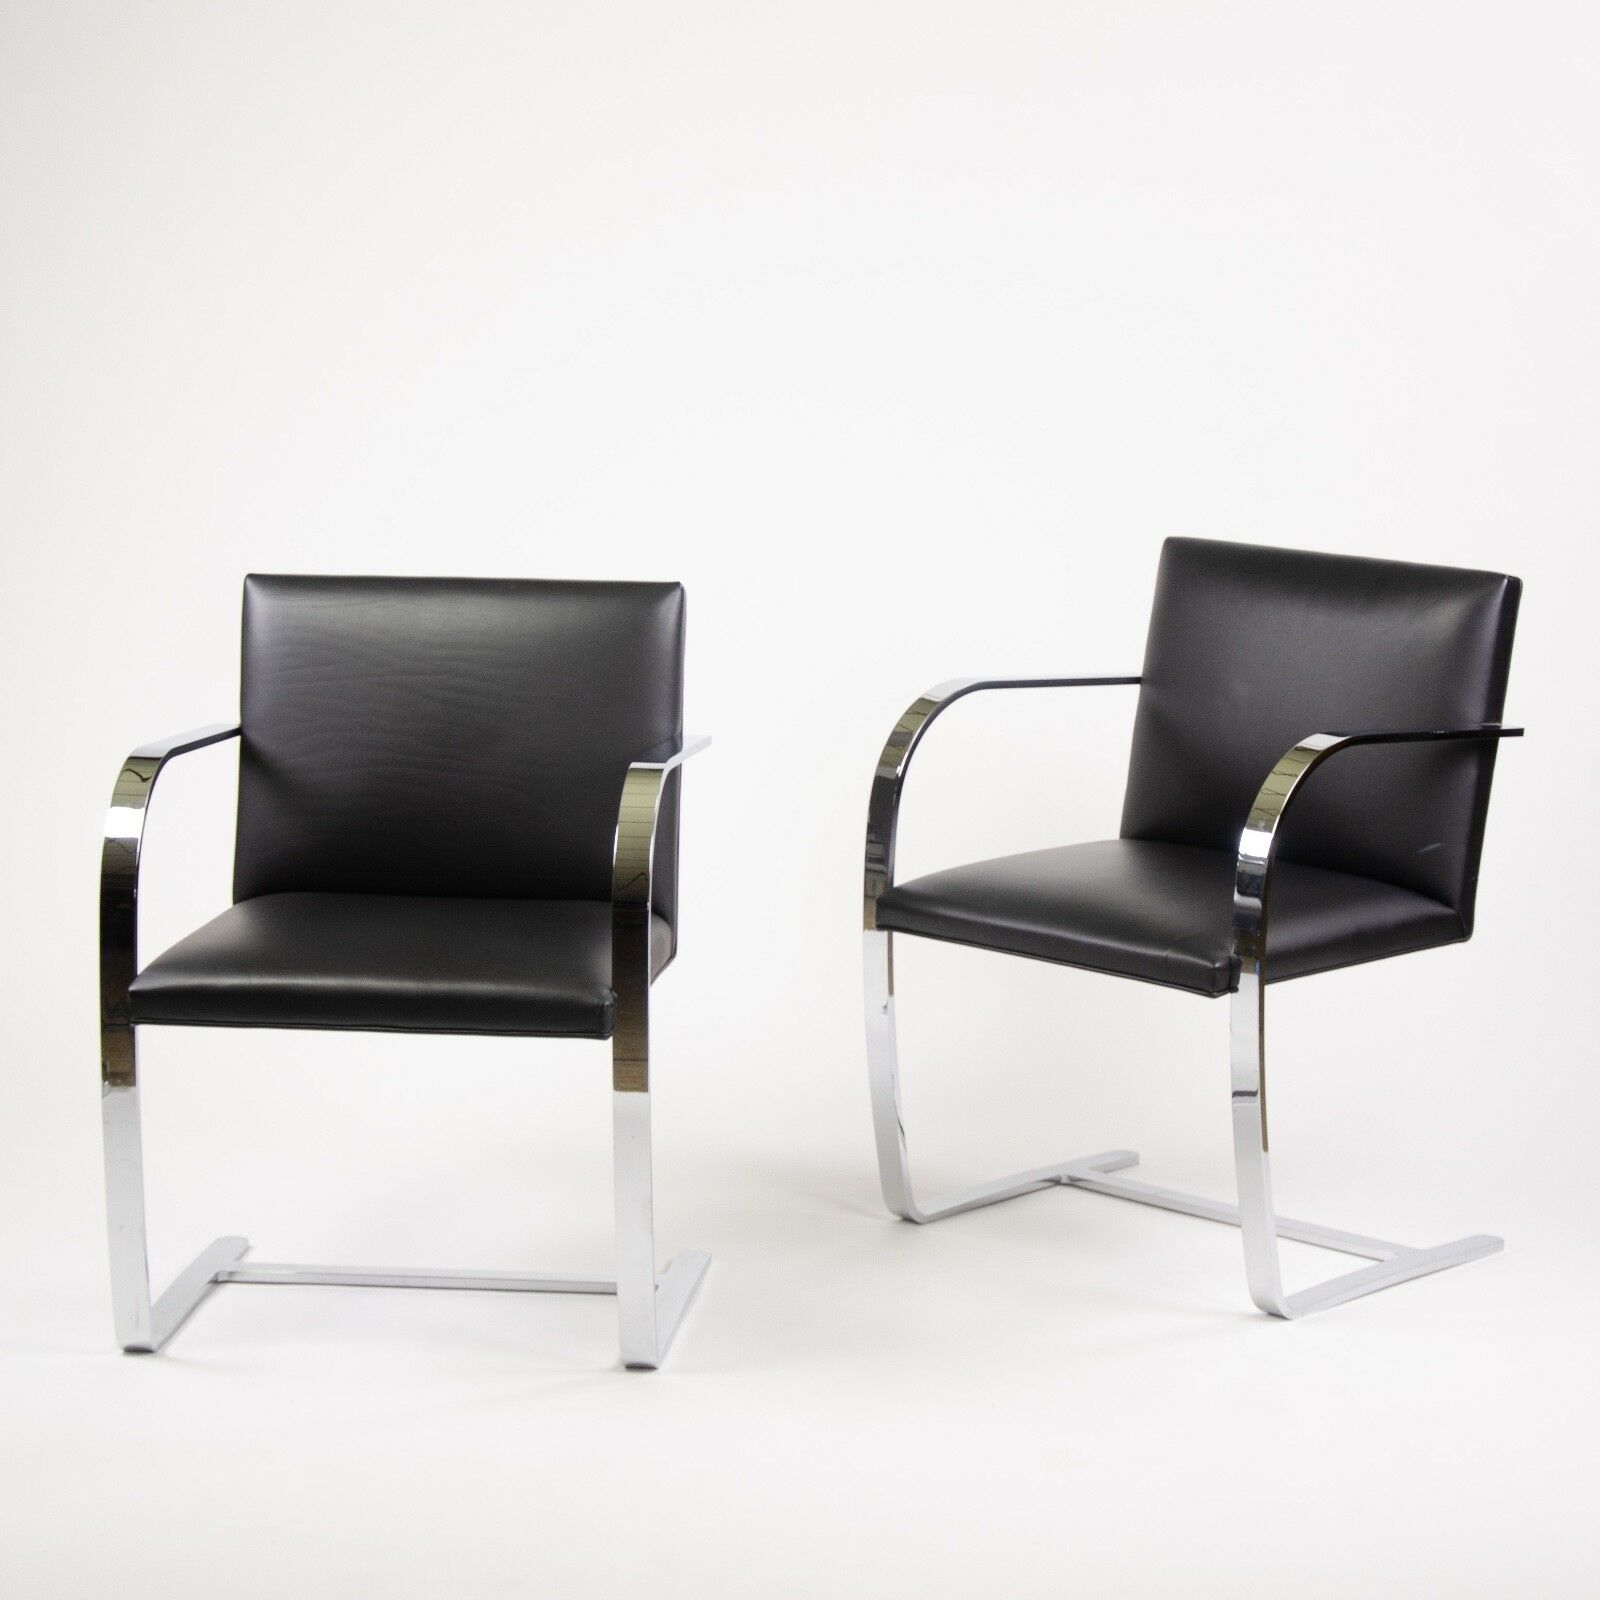 Chaise Brno Mies Van Der Rohe details about original knoll mies van der rohe brno chairs black leather  sets avail 2000s